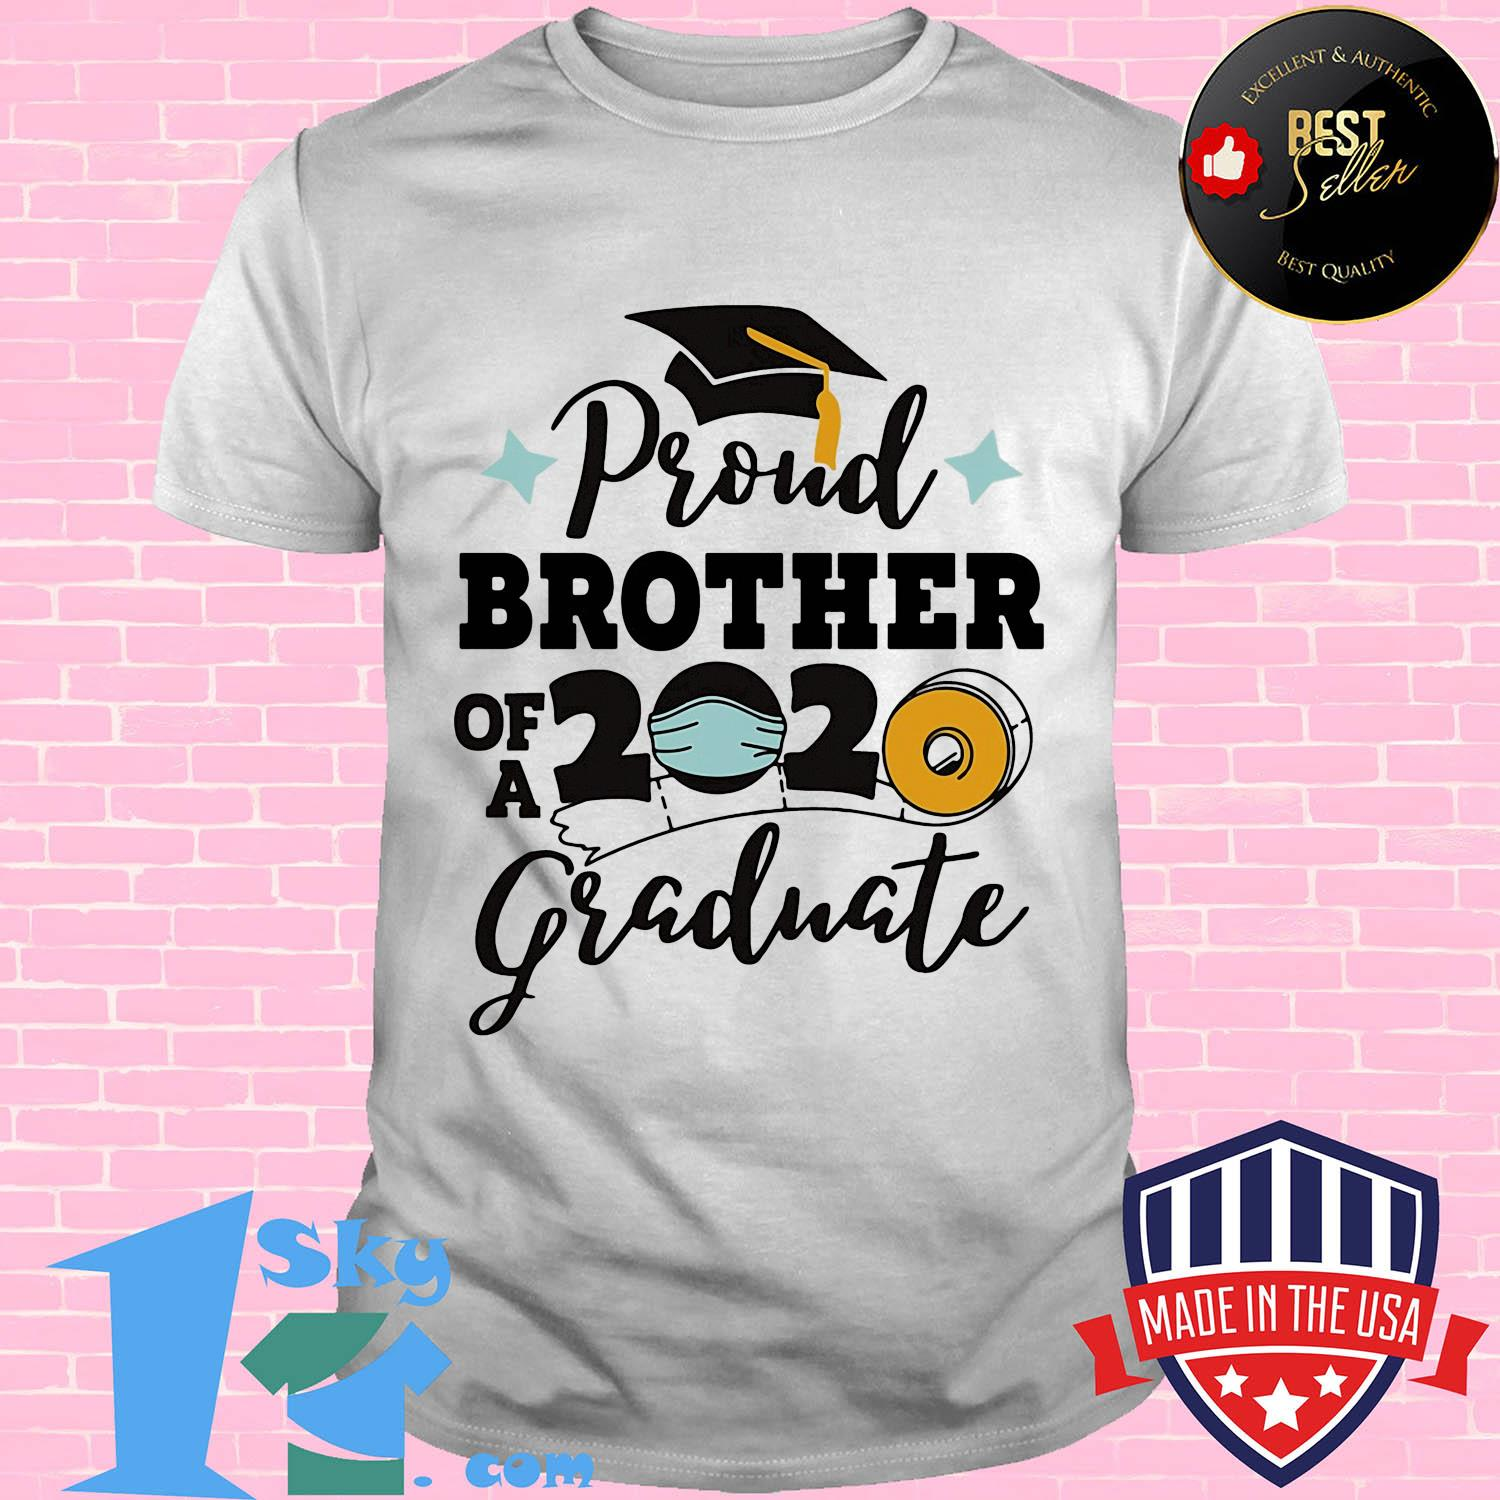 Proud brother of a 2020 graduate mask shirt